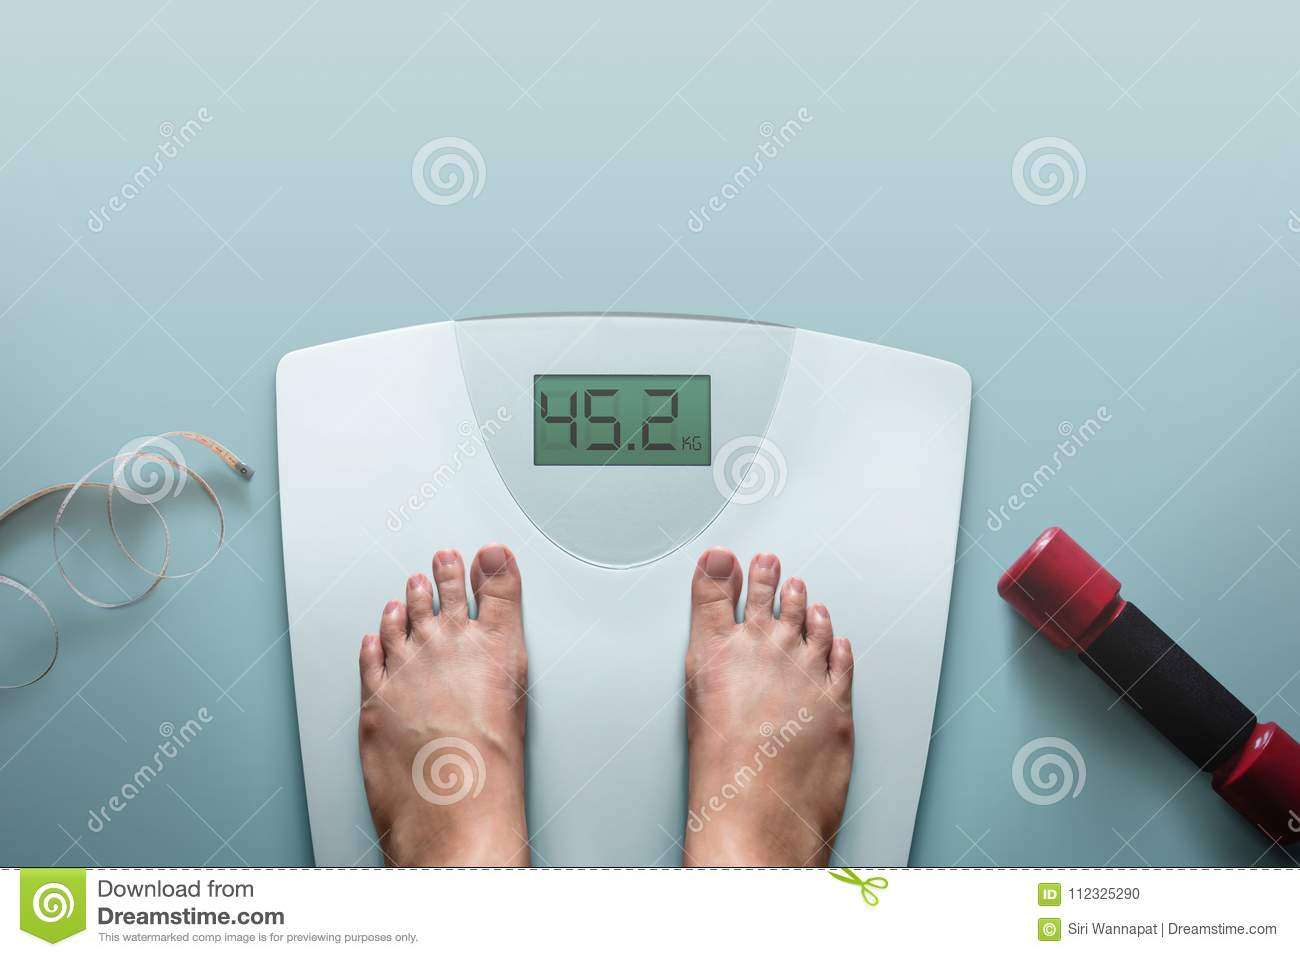 Exercising and Diet Concept, Woman Standing on Digital Weight Sc